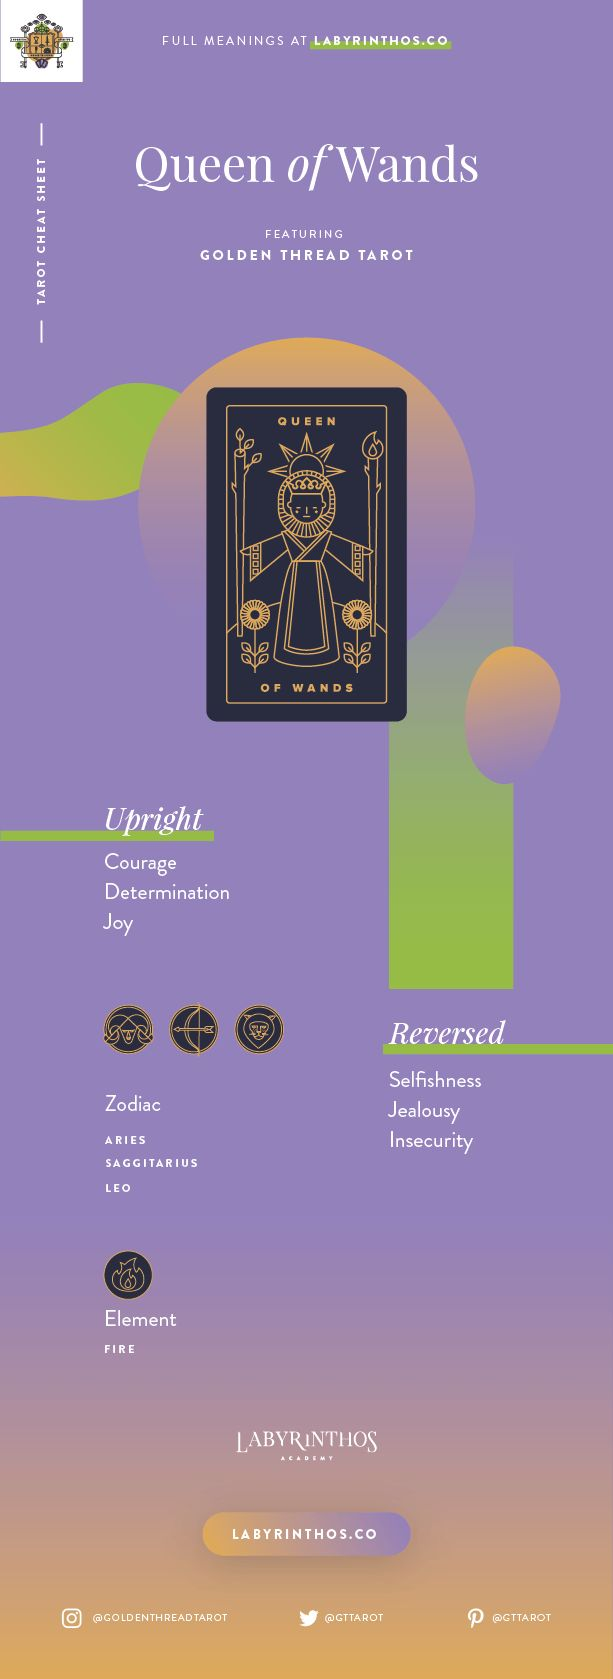 Queen of Wands Meaning - Tarot Card Meanings Cheat Sheet. Art from Golden Thread Tarot.